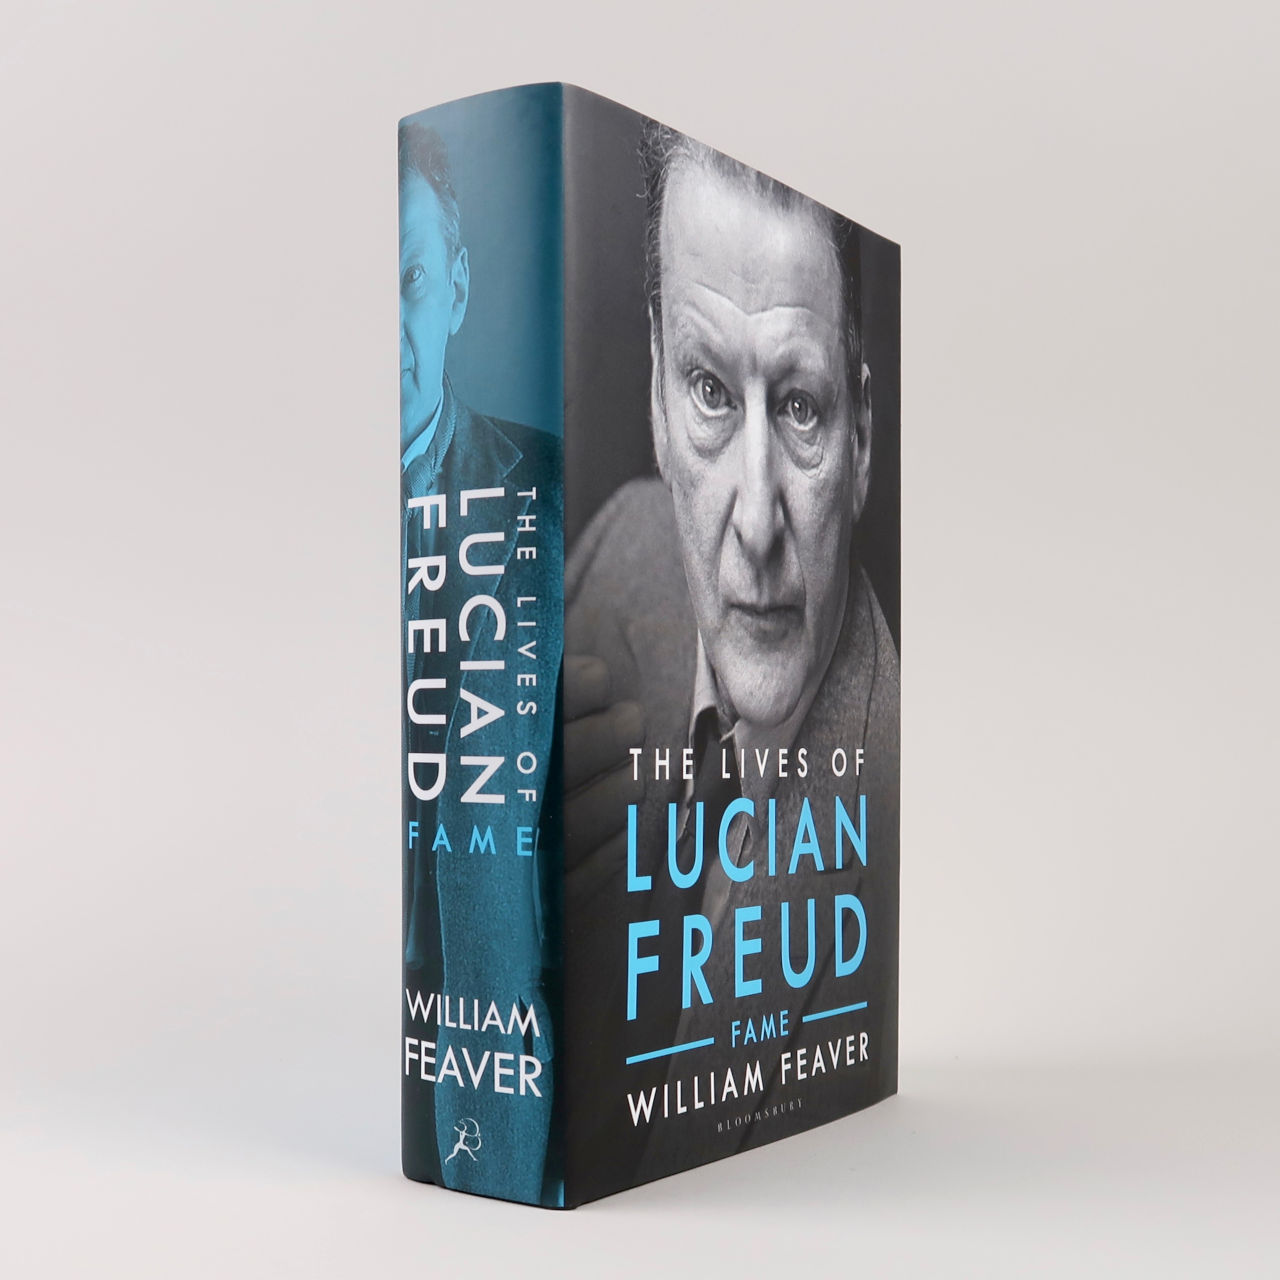 The Lives of Lucien Freud, Fame 1968-2011 - William Feaver